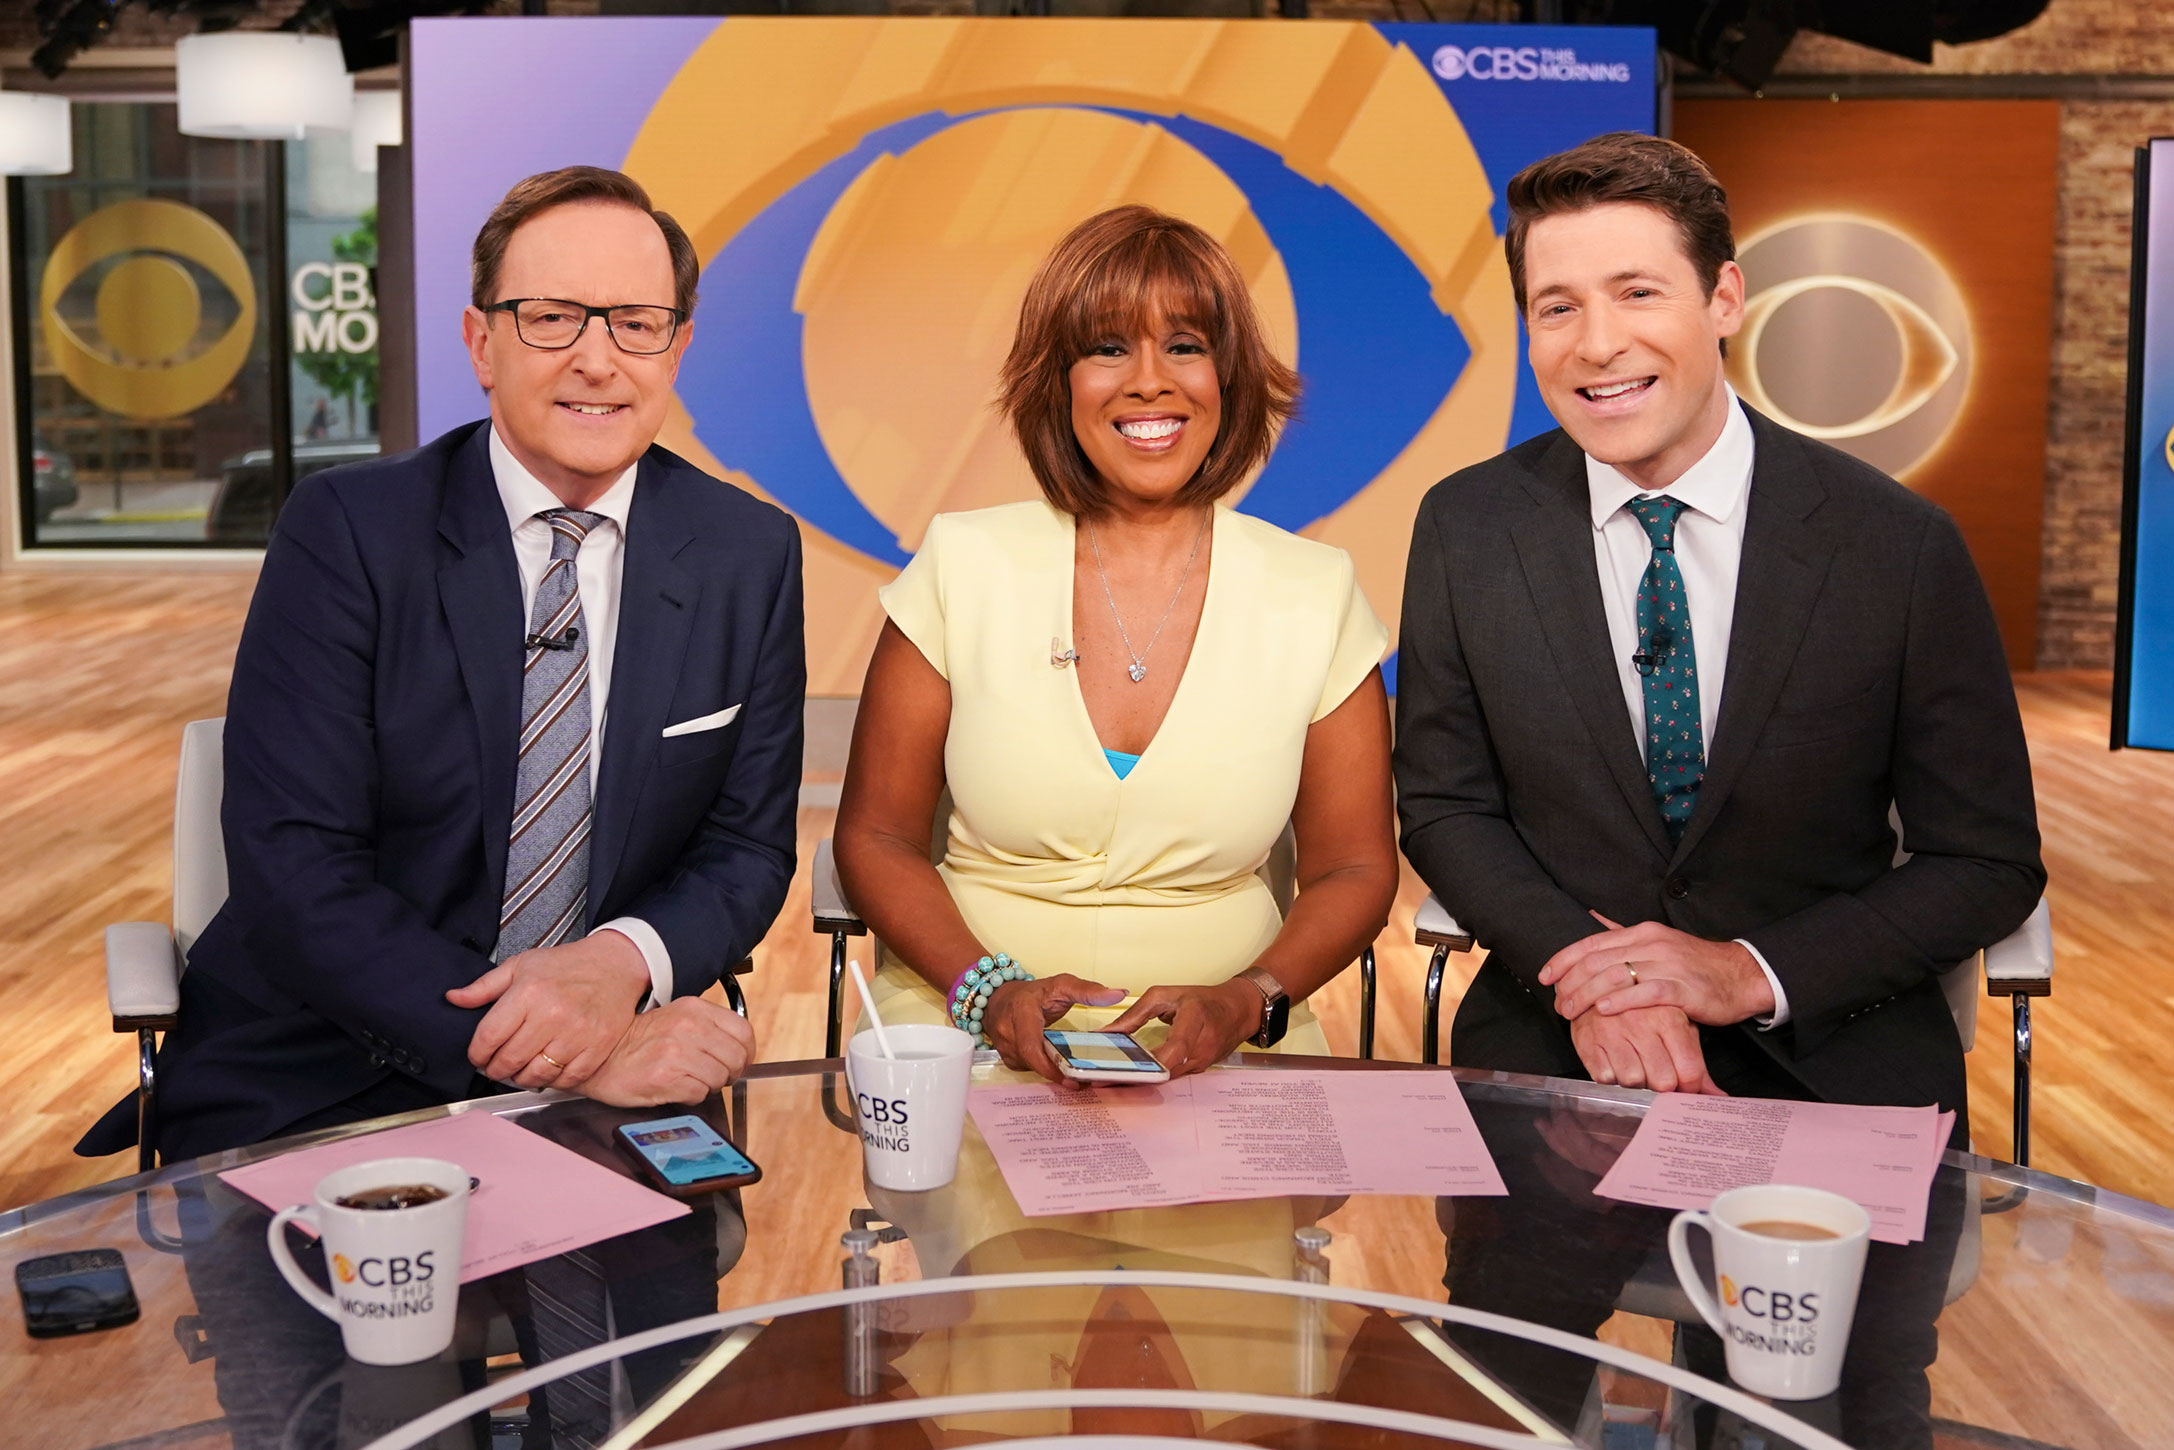 Cbs This Morning Ratings Plunge After Shake Up